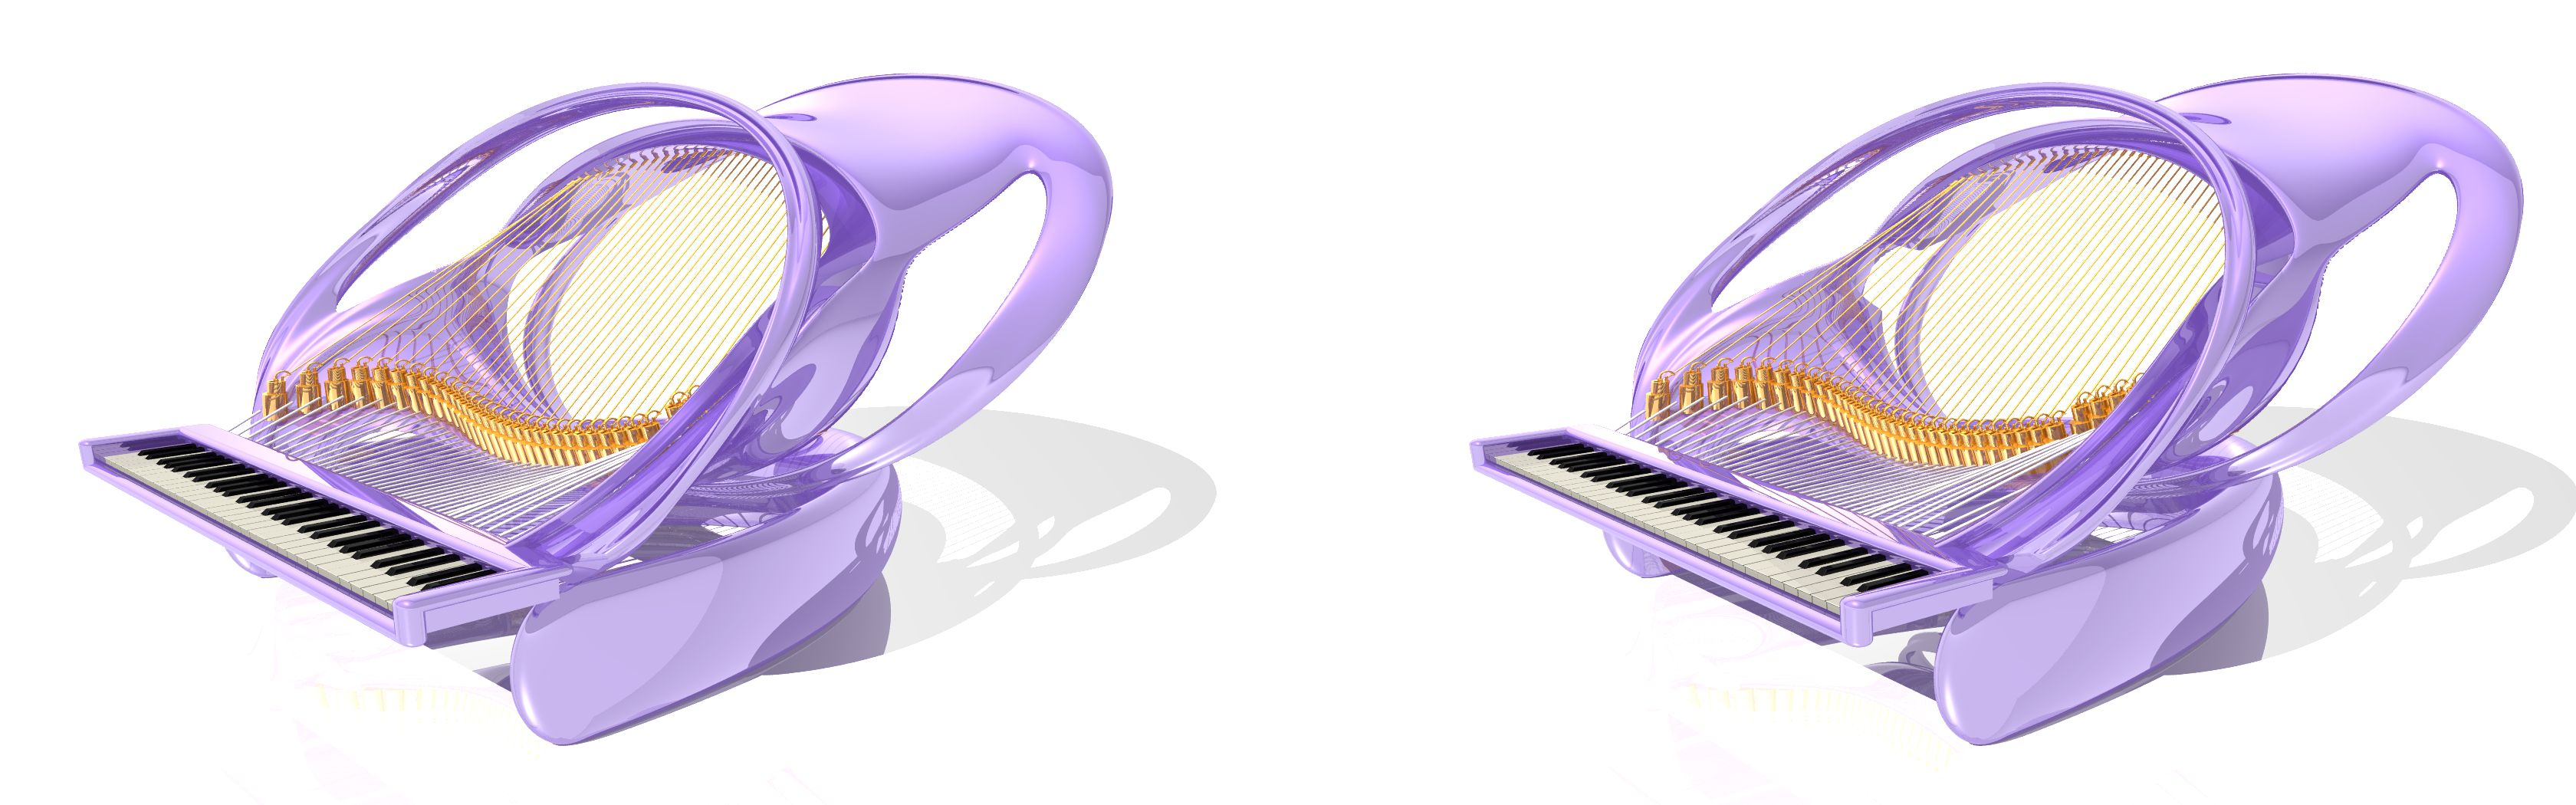 Octopus Piano - 3D stereo JPS image